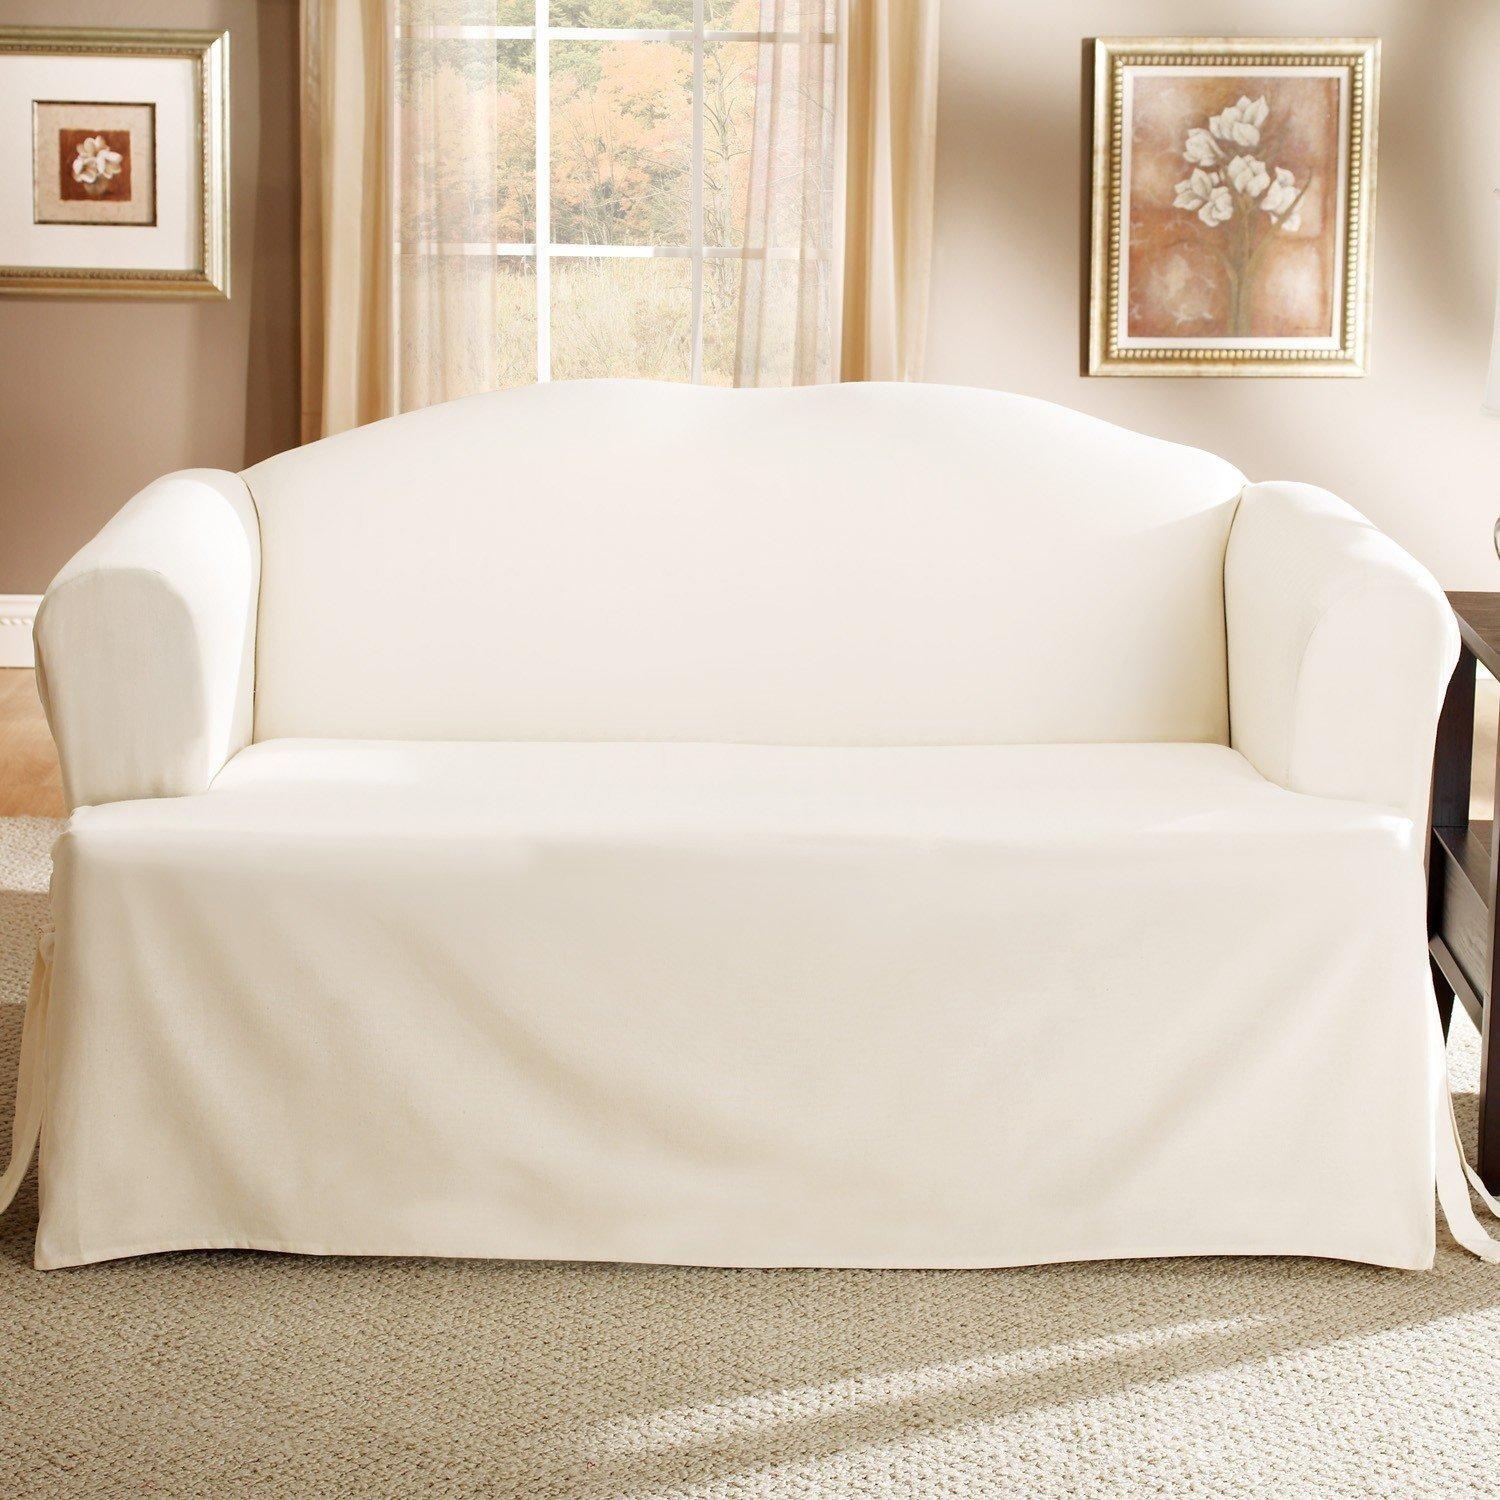 Furniture: Slipcovers For Sectional That Applicable To All Kinds Intended For Stretch Slipcover Sofas (Image 4 of 20)